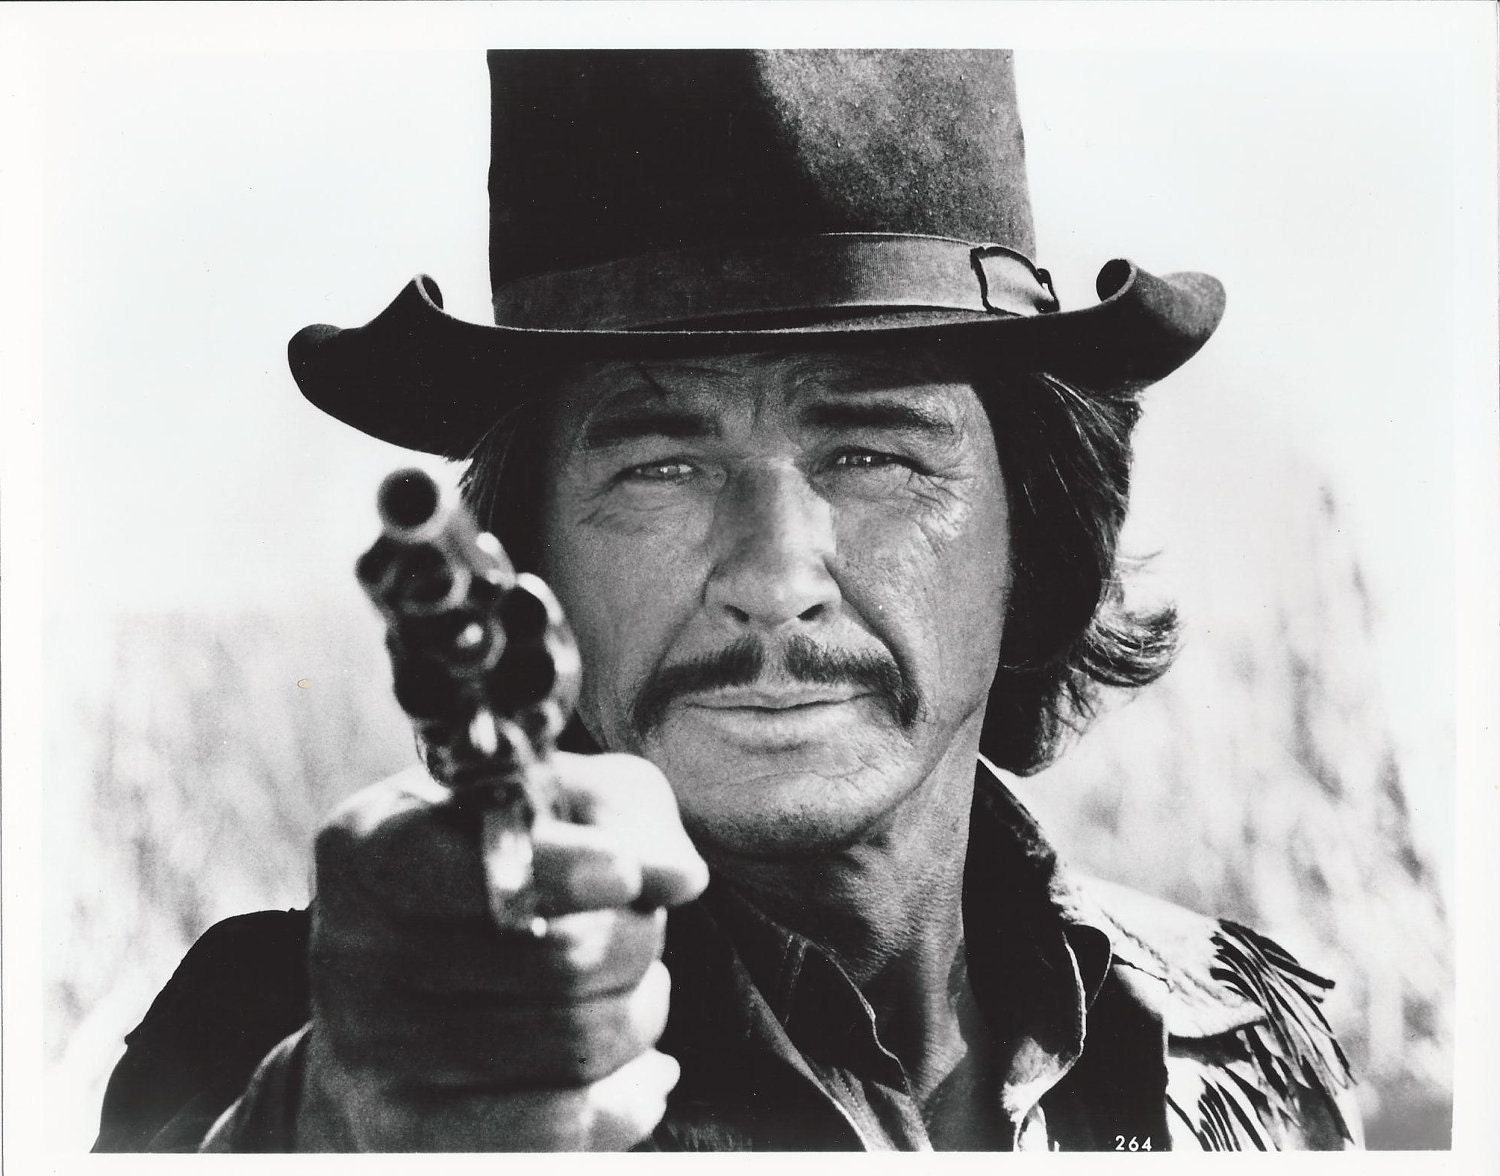 CHARLES BRONSON 8x10 Black and White Photo 1980s